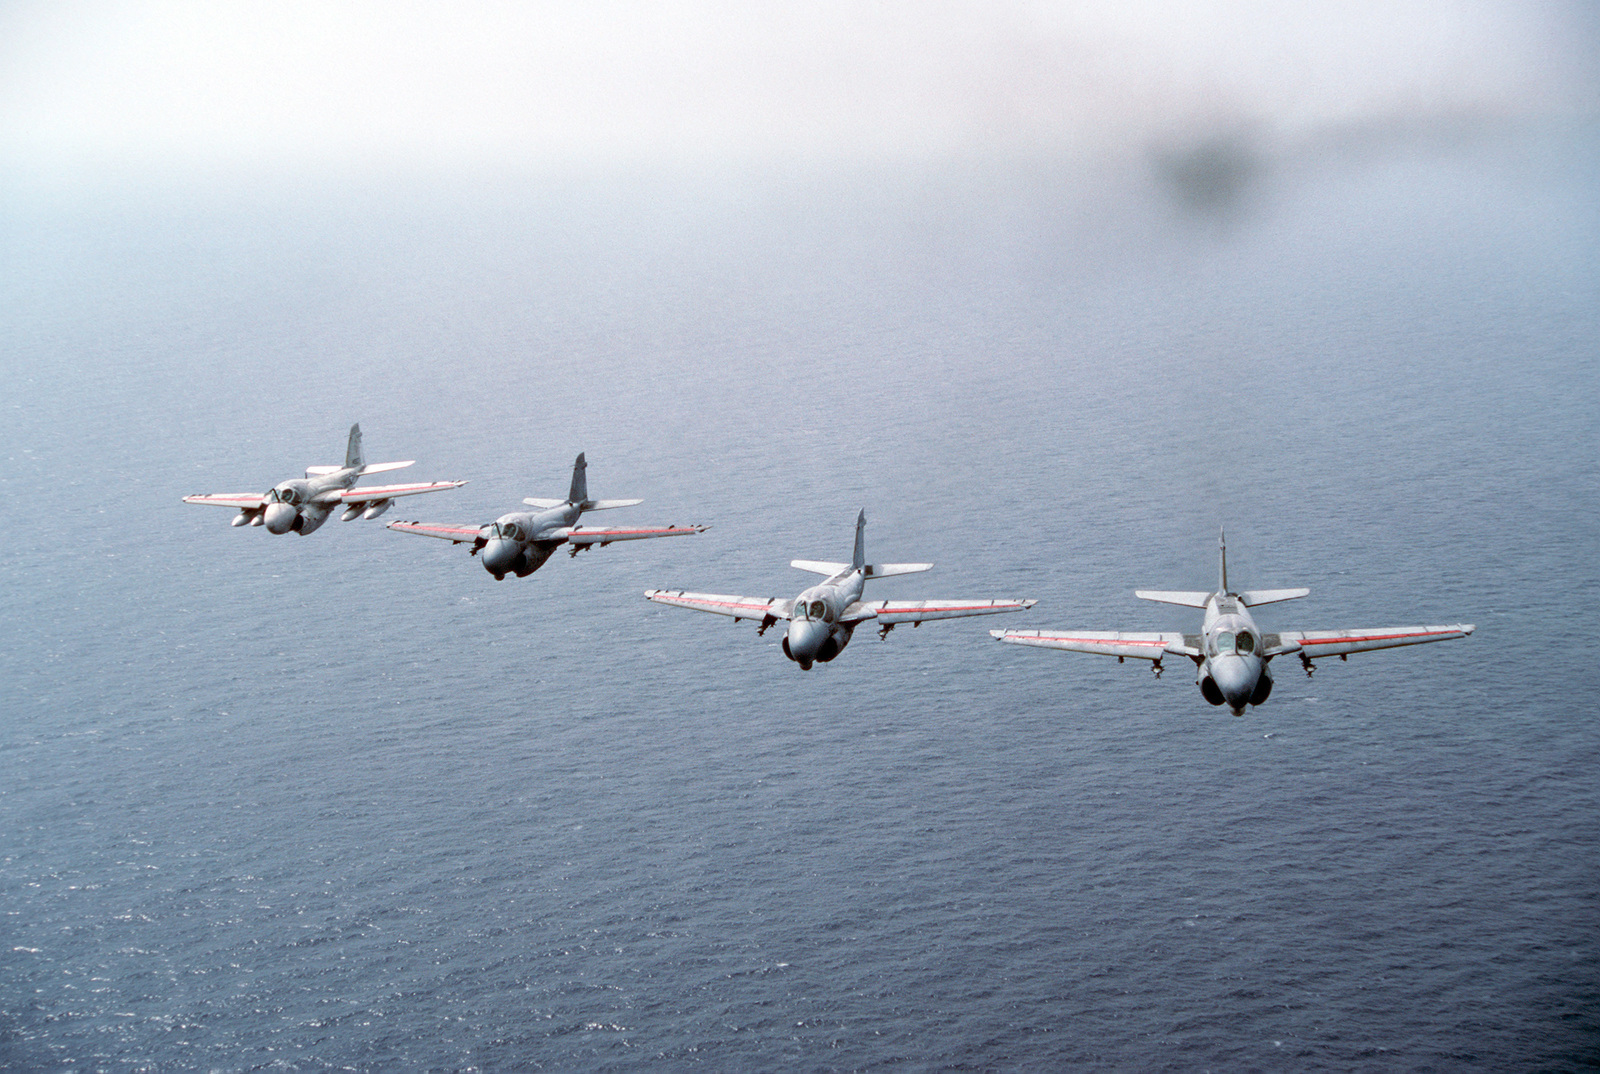 An air-to-air front view of a flight of one KA-6D Intruder and three A-6E Intruder aircraft from Attack Squadron 34 (VA-34) during their deployment aboard the aircraft carrier USS DWIGHT D. EISENHOWER (CVN 69)